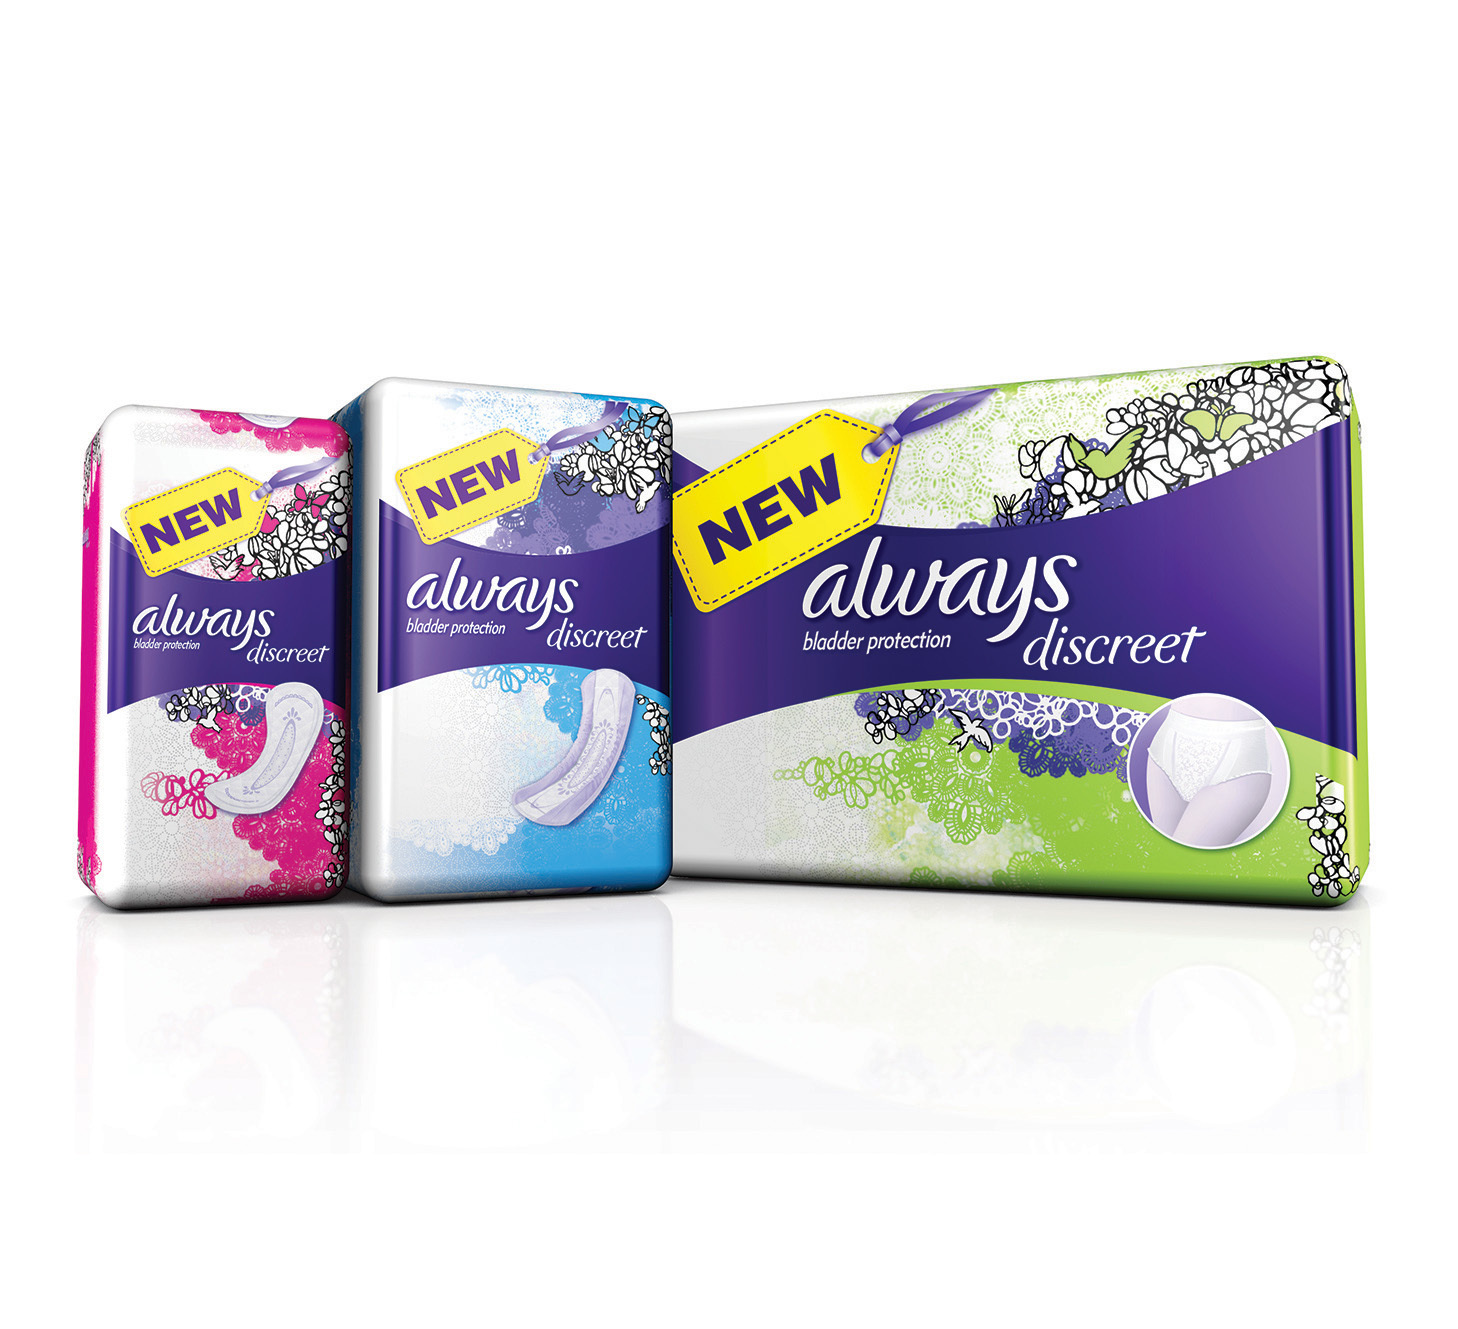 Procter & Gamble's Always brand, the global leader in feminine care that's protected women for over 30 years, has launched new Always Discreet, specifically designed to revolutionize the way women manage their sensitive bladders. (Photo: Business Wire)